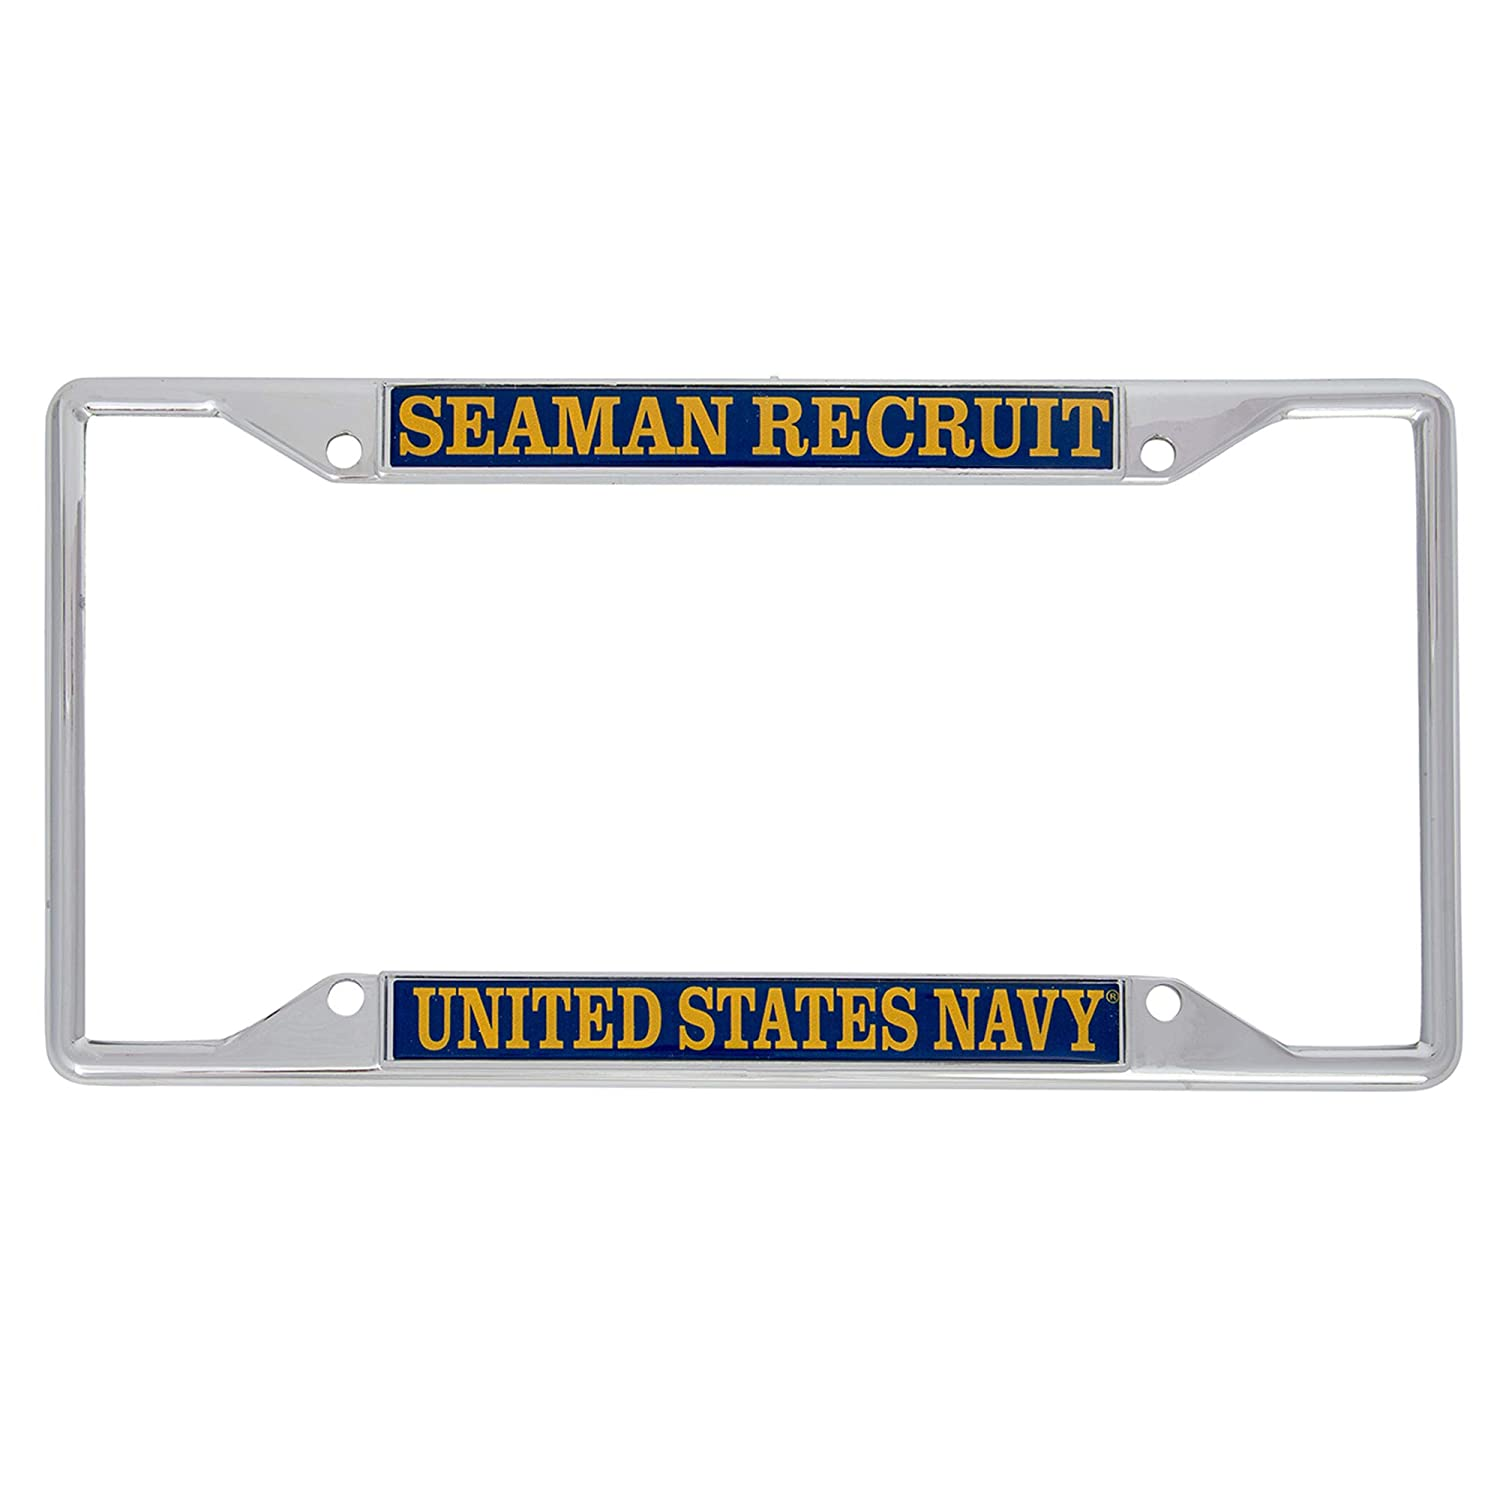 Desert Cactus US Navy Seaman Recruit Enlisted Grades License Plate Frame for Front Back of Car Officially Licensed United States